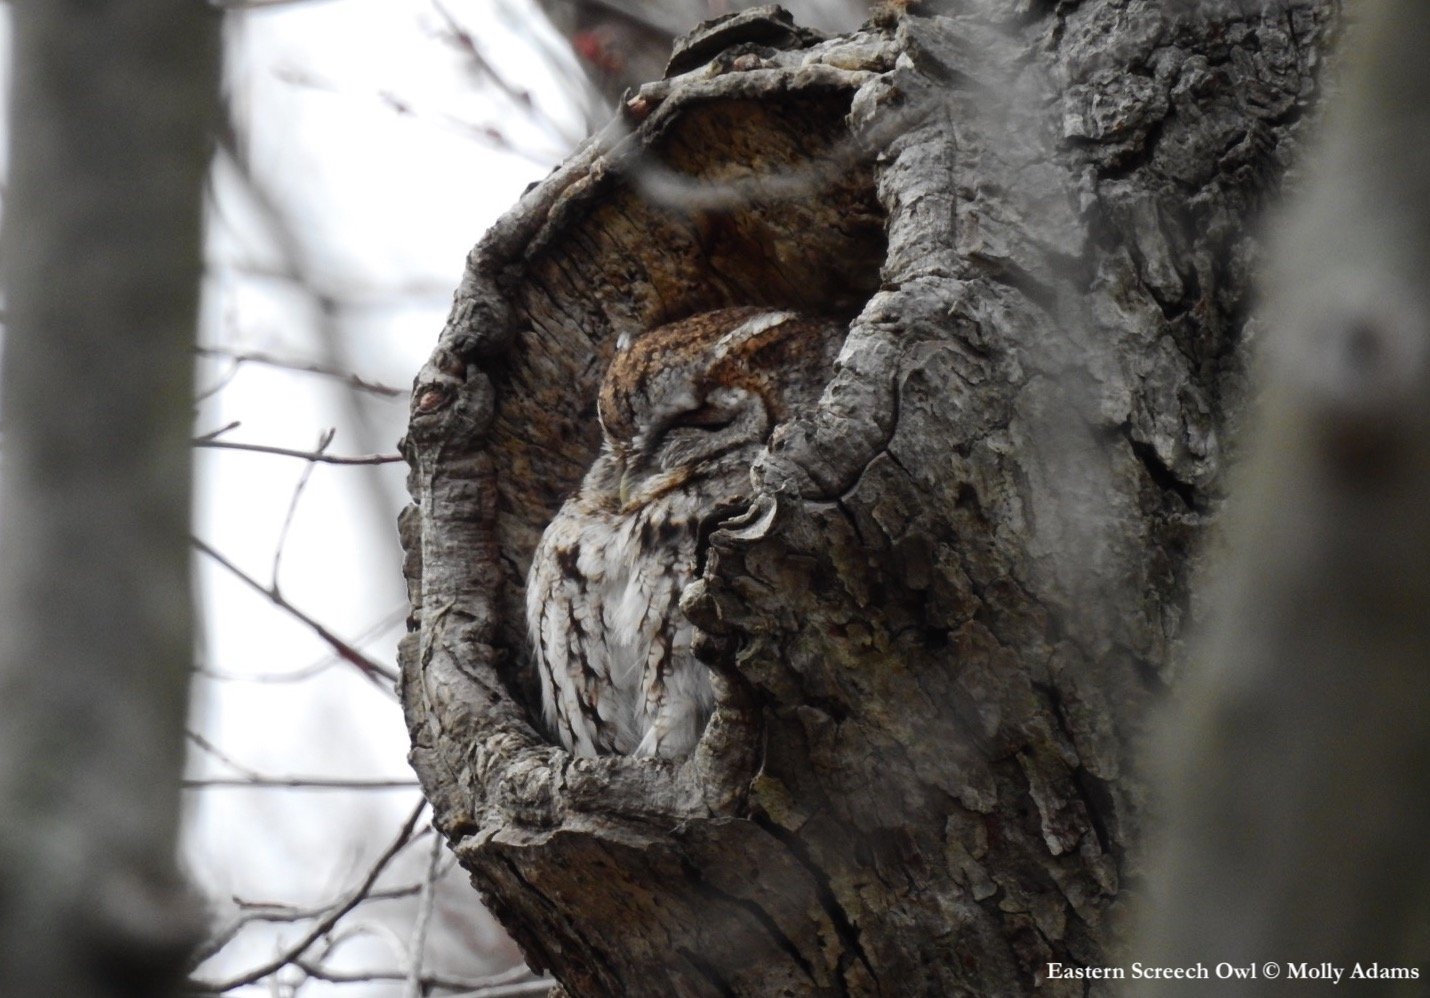 Photograph of an Eastern Screech Owl with its eyes closed in nest cavity